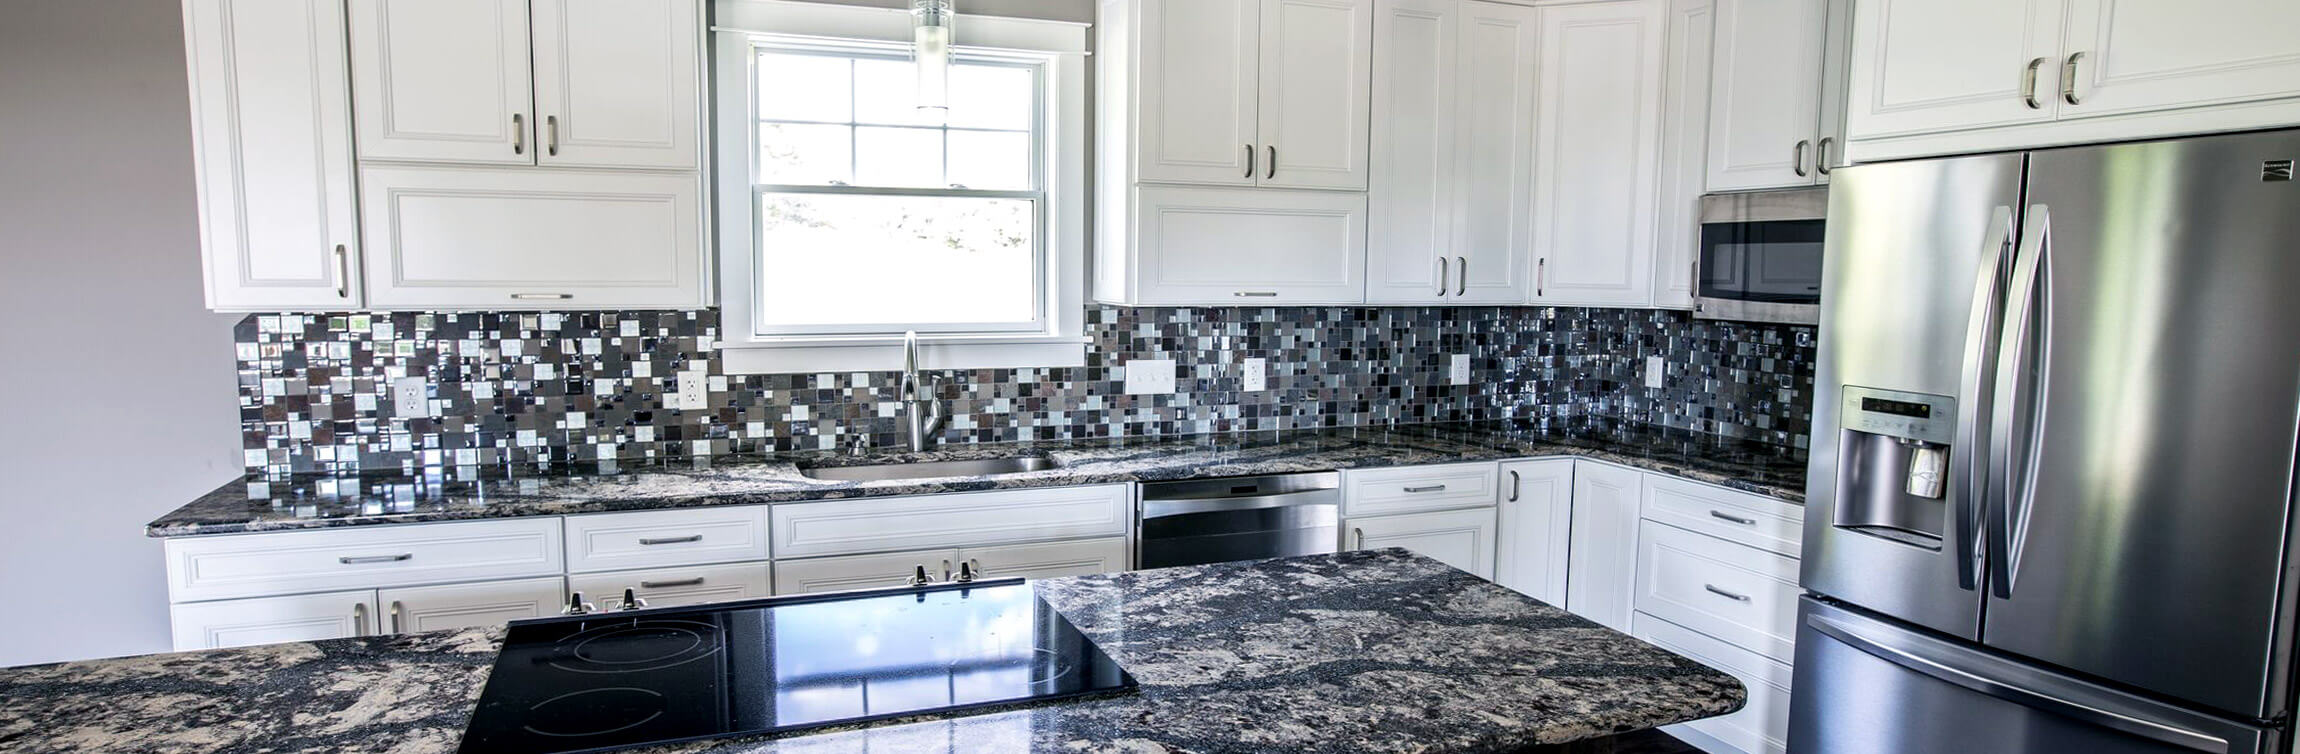 Delightful Custom Residential Kitchen Featuring Solid Wood Cabinets With A White  Finish, Glass Tile Backsplash,